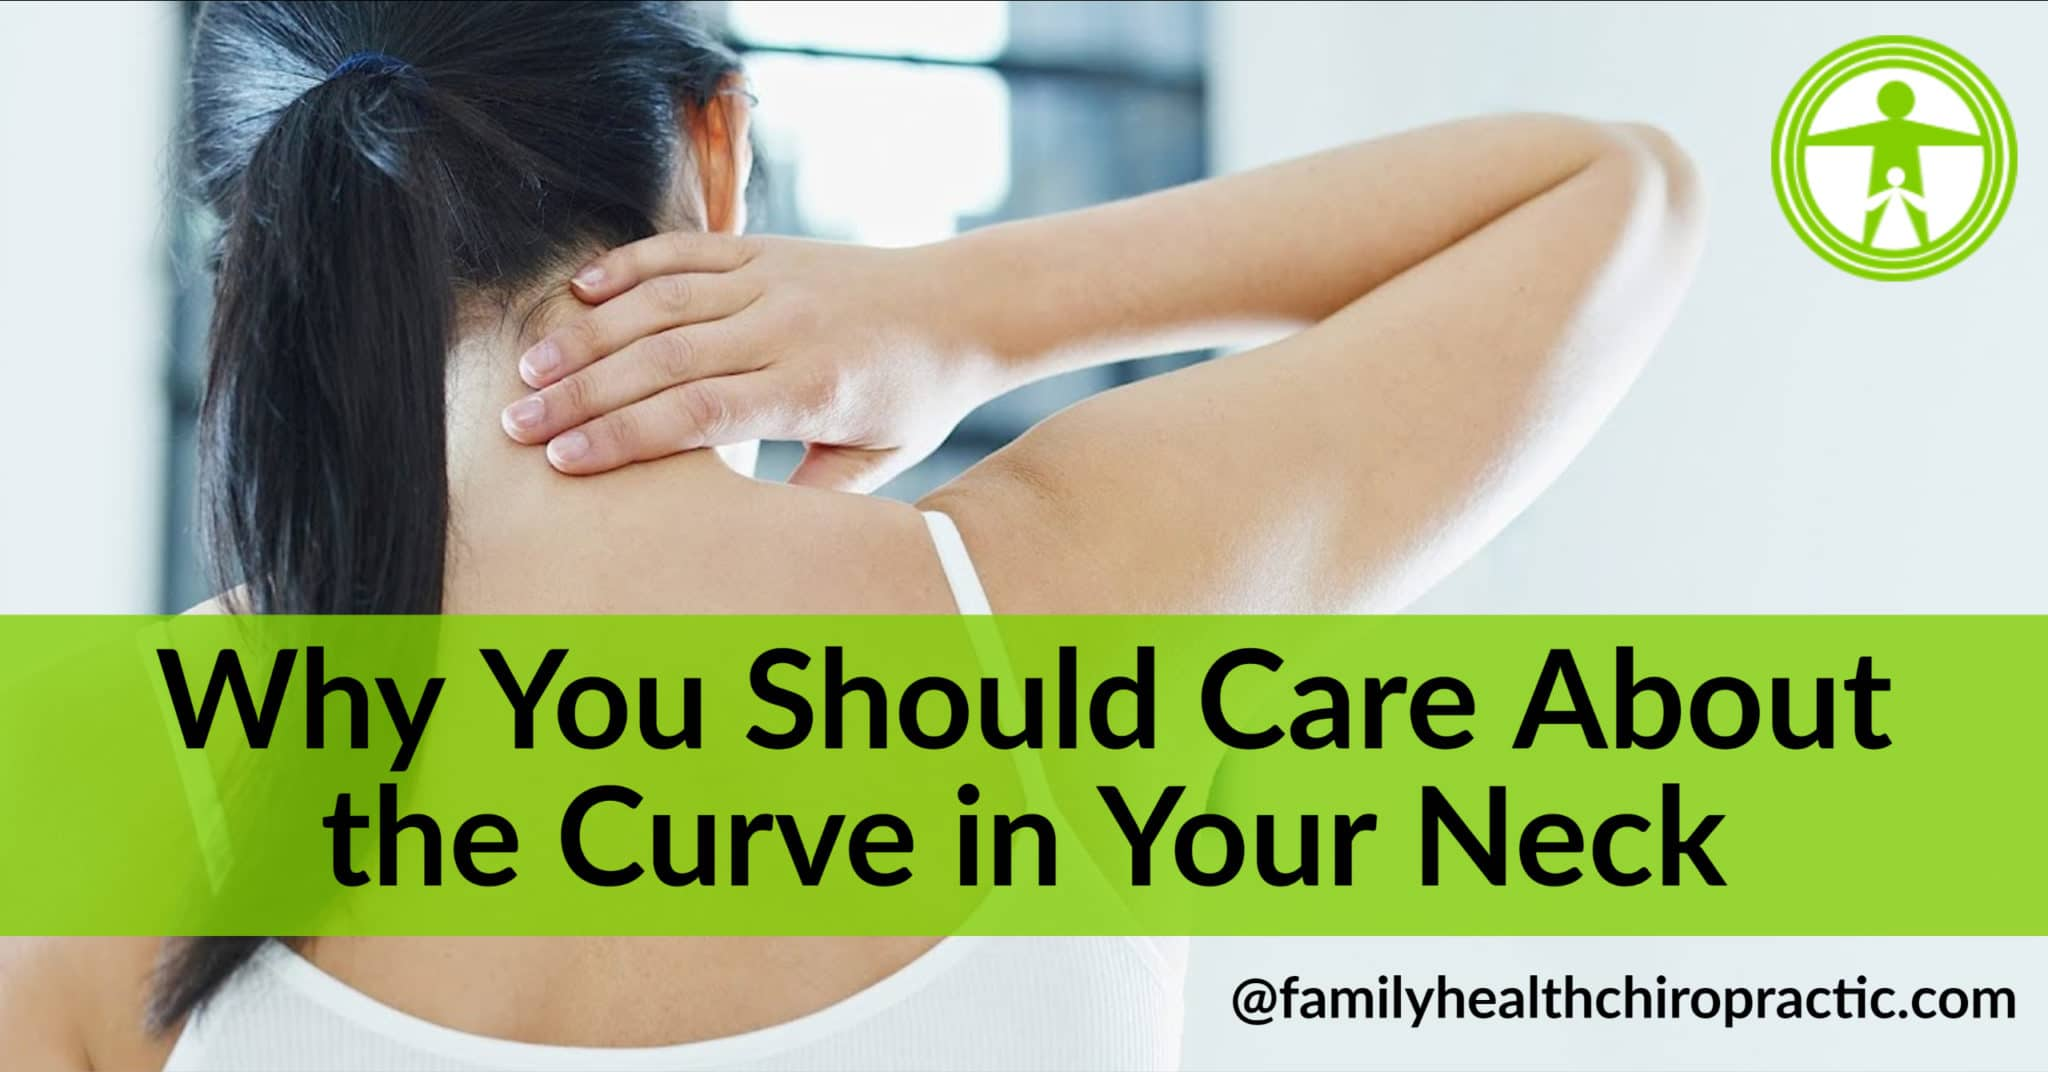 Why You Should Care About the Curve in your neck